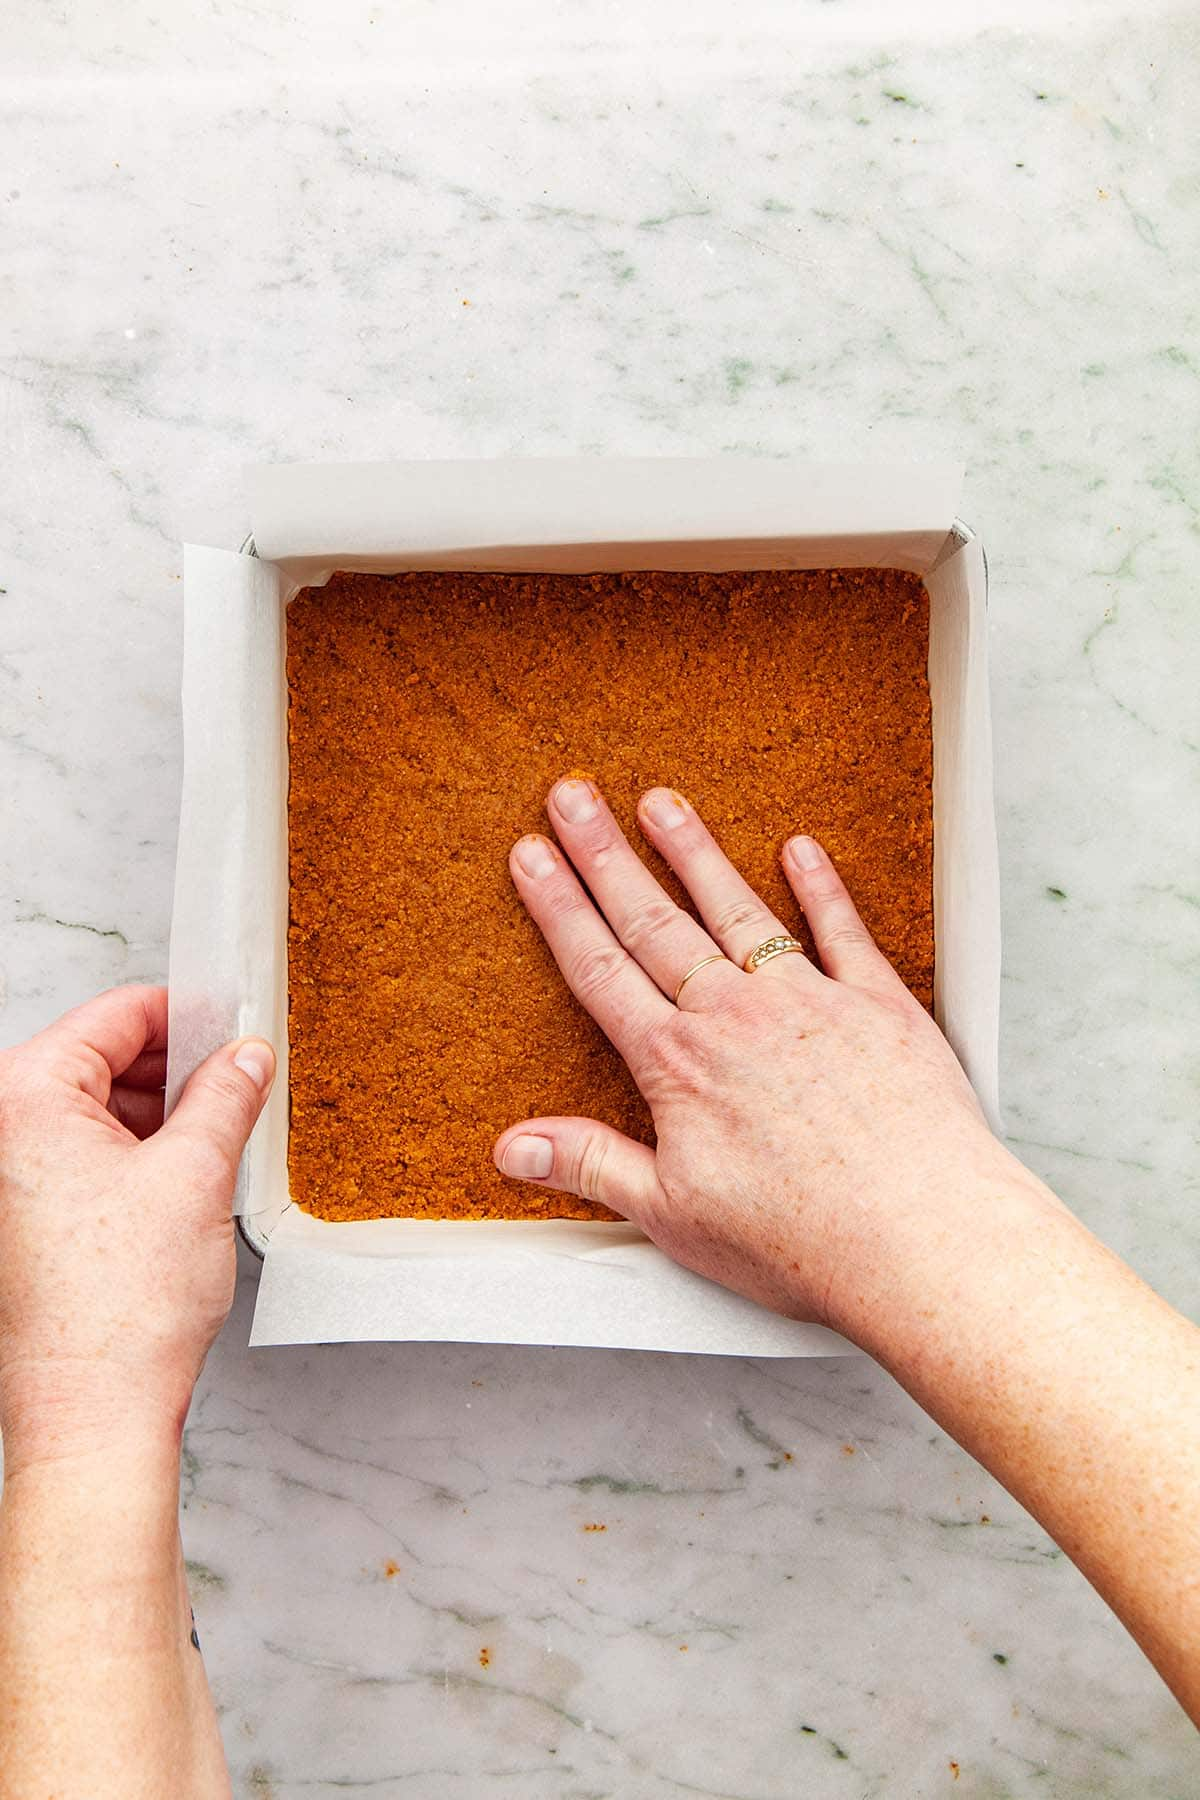 A hand finishing pressing graham crumbs into a square pan.